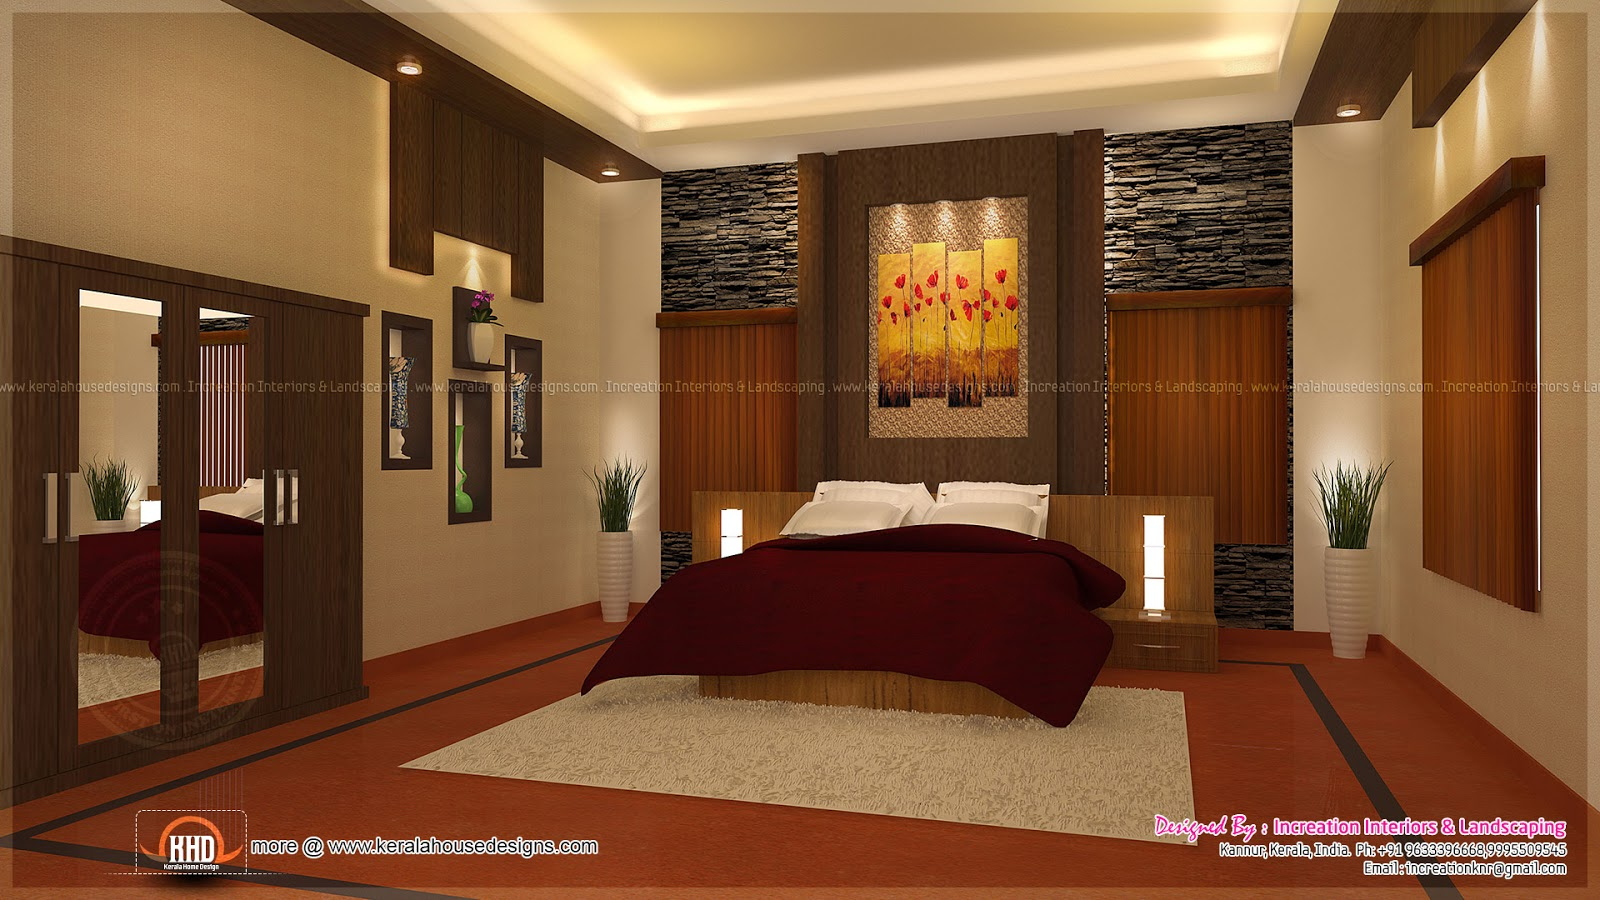 House interior ideas in 3d rendering kerala home design for House plans with interior photos